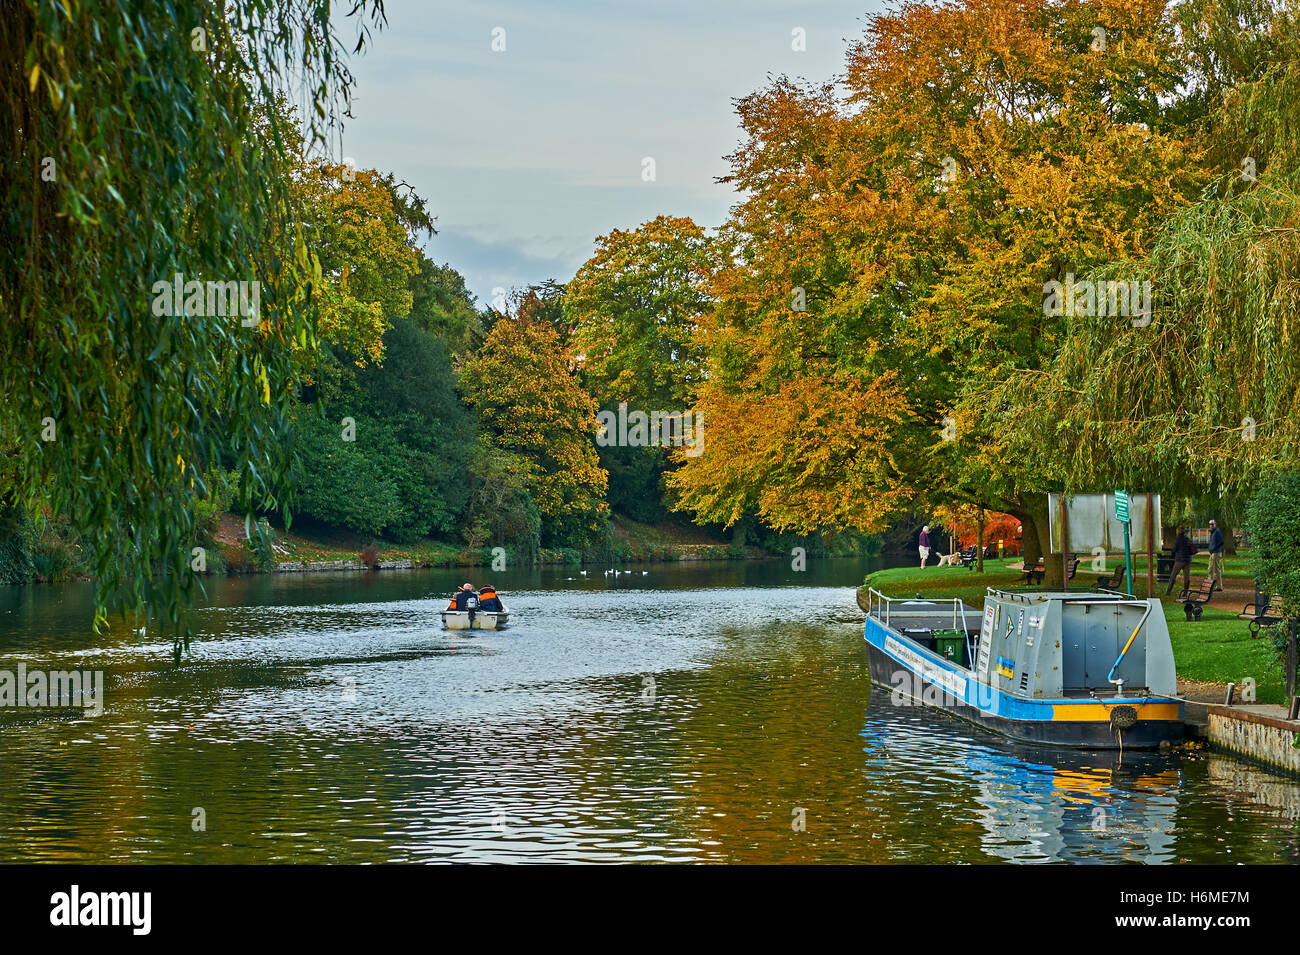 Autumnal colours on trees lining the riverbank in Stratford upon AVON - Stock Image